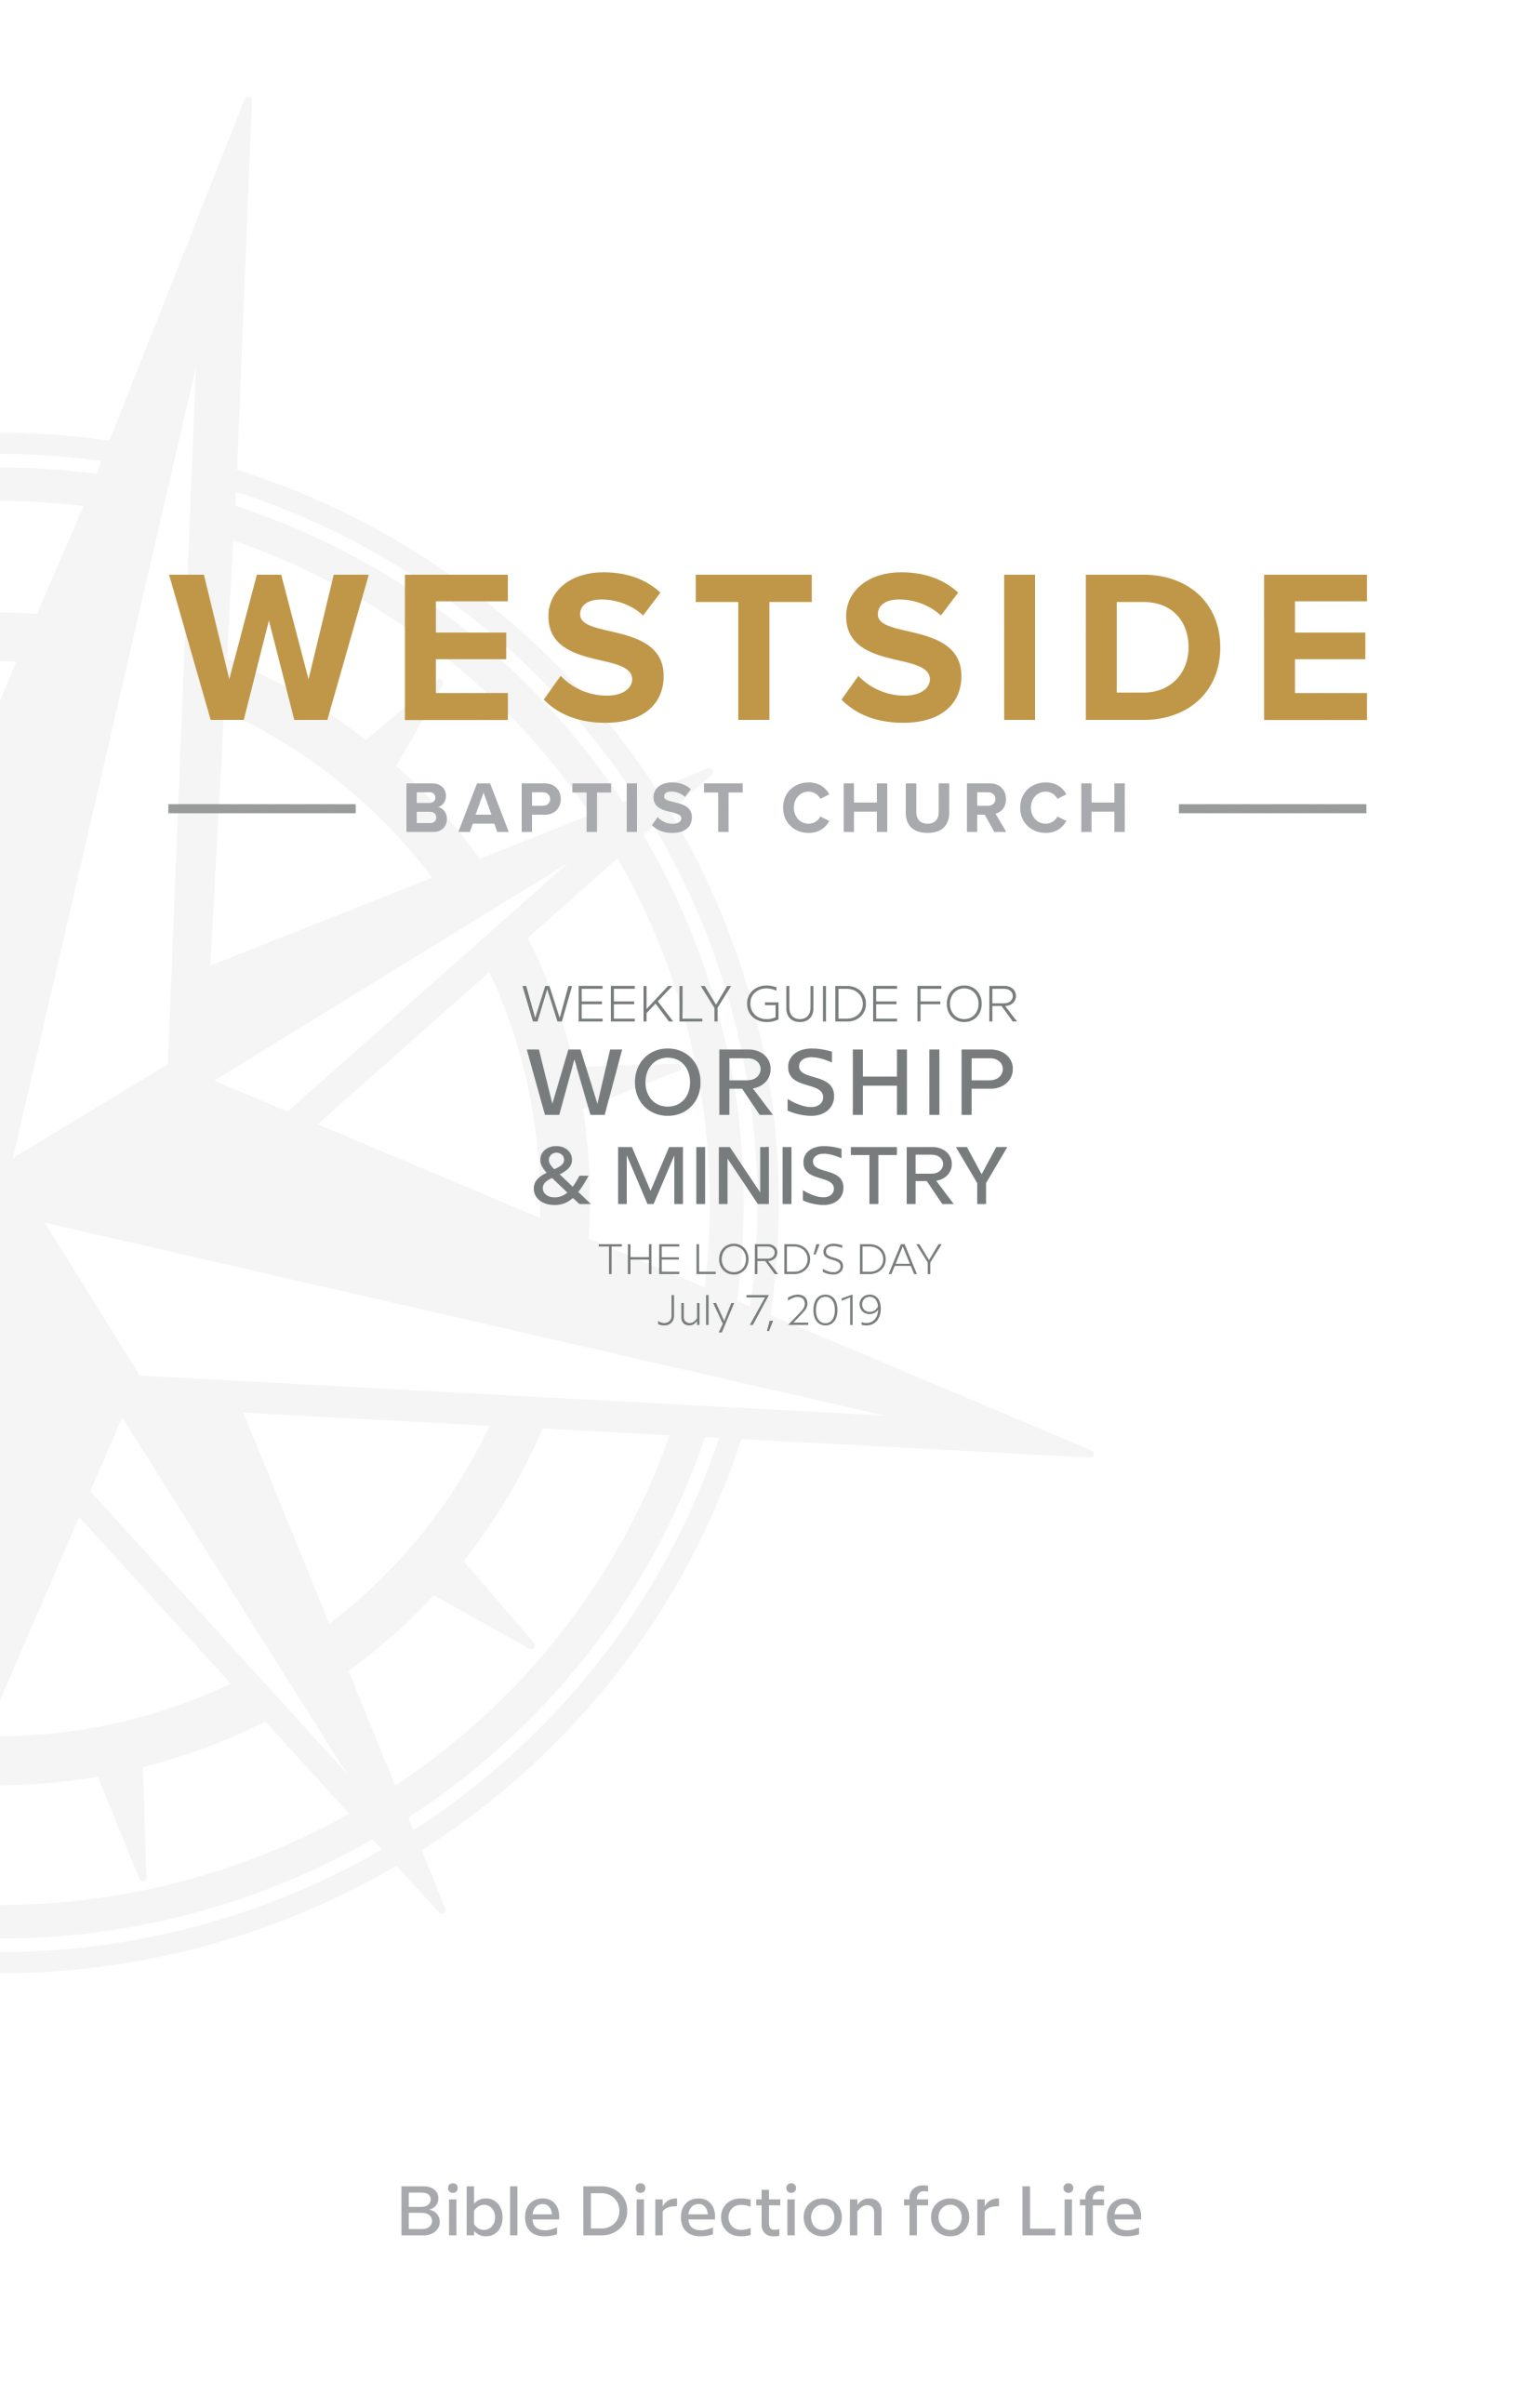 Weekly Guide for Worship and Ministry—July 7